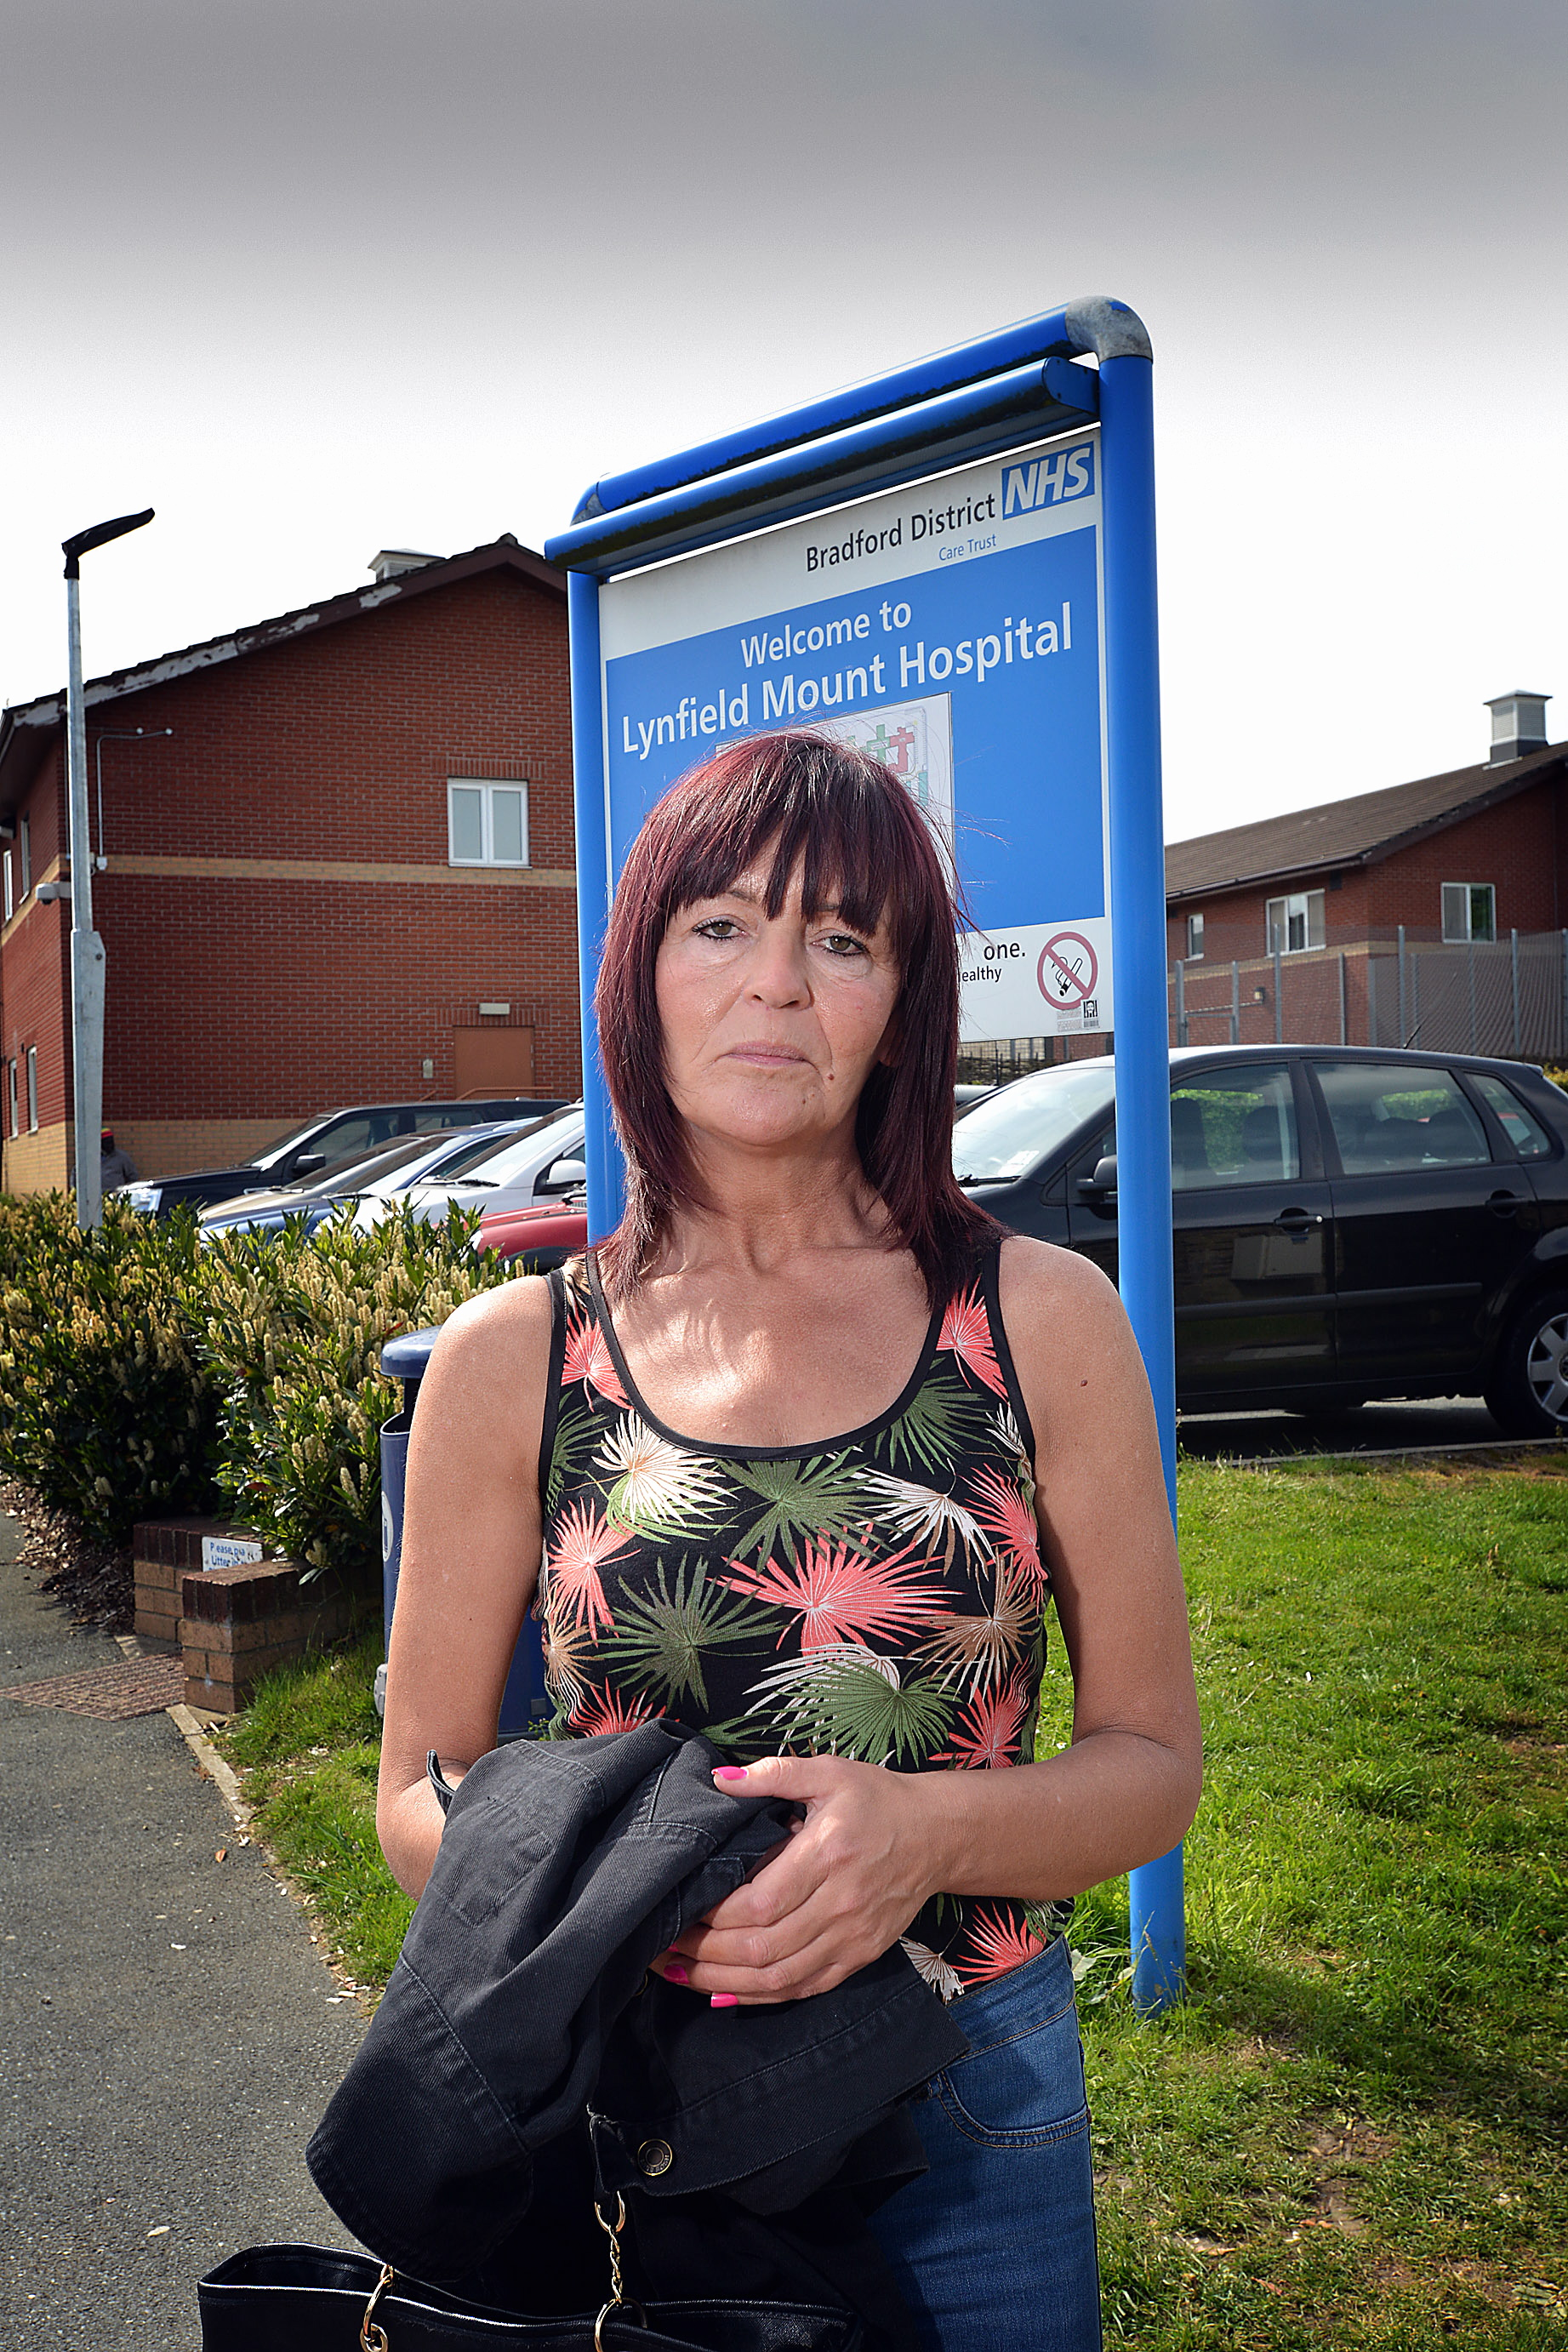 Mum loses desperate battle to stop disabled son being moved to care home 125 miles away